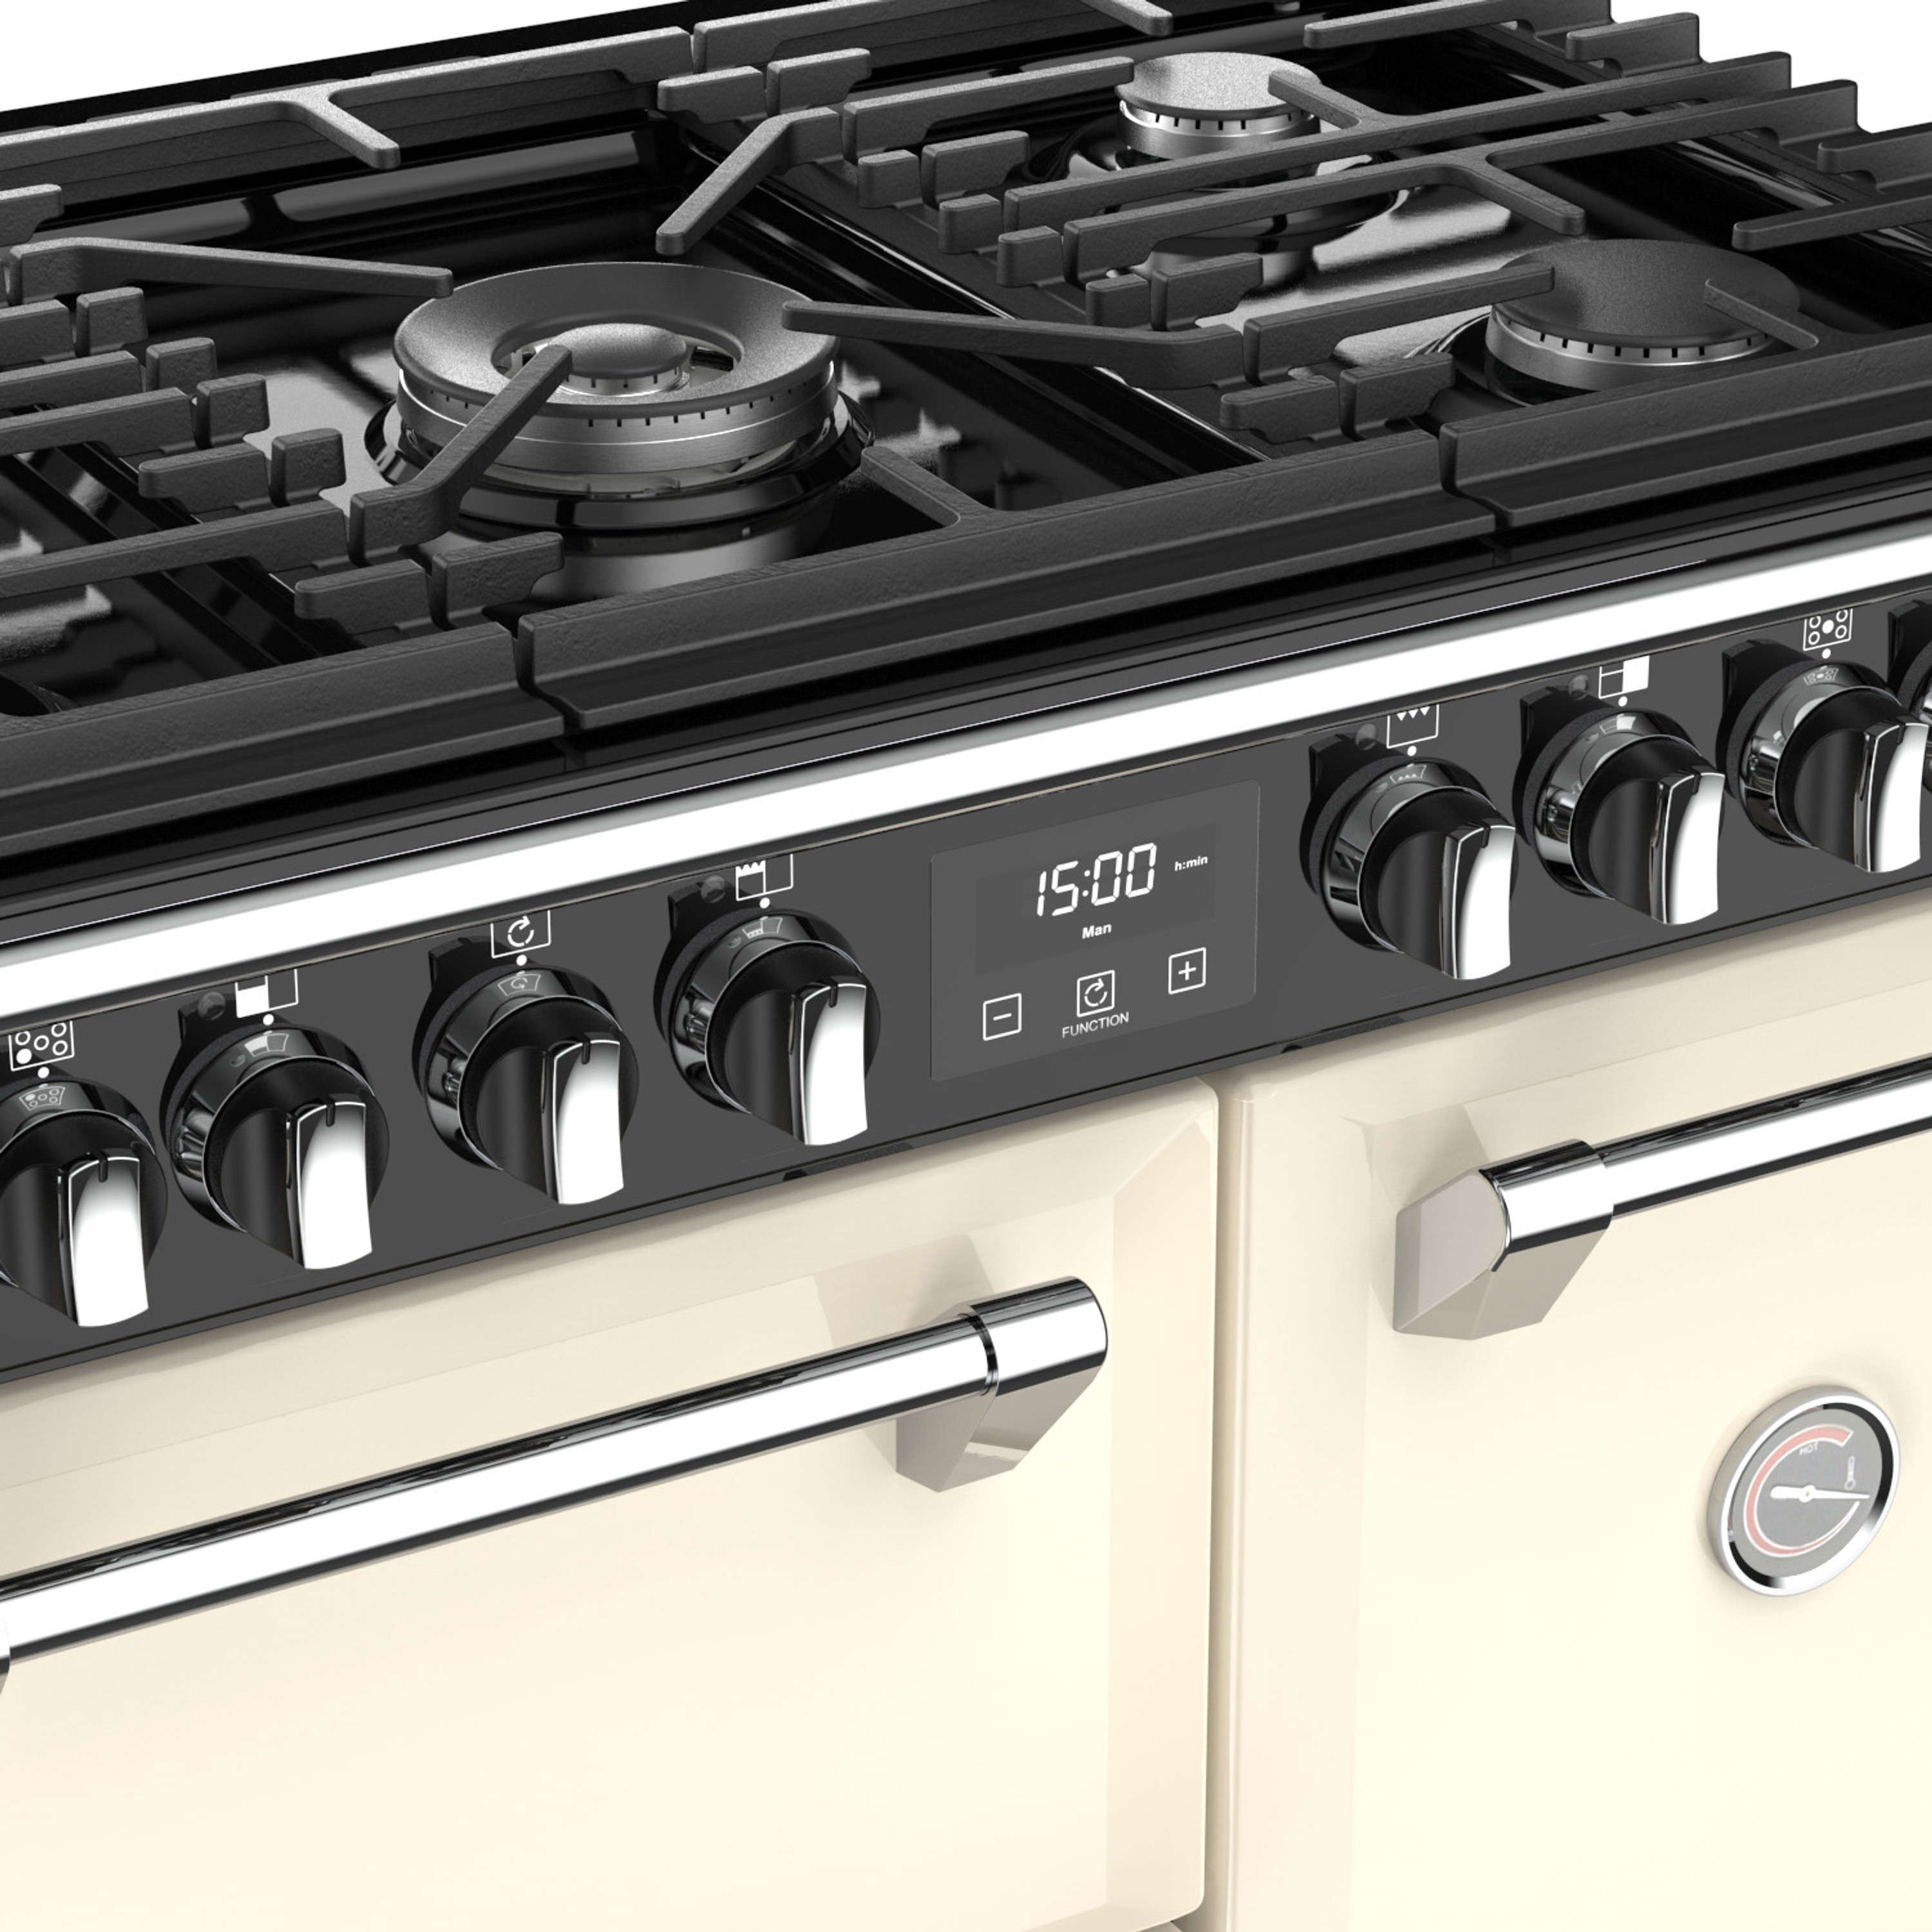 Stoves Richmond S900 Gas Champagner Range Cooker